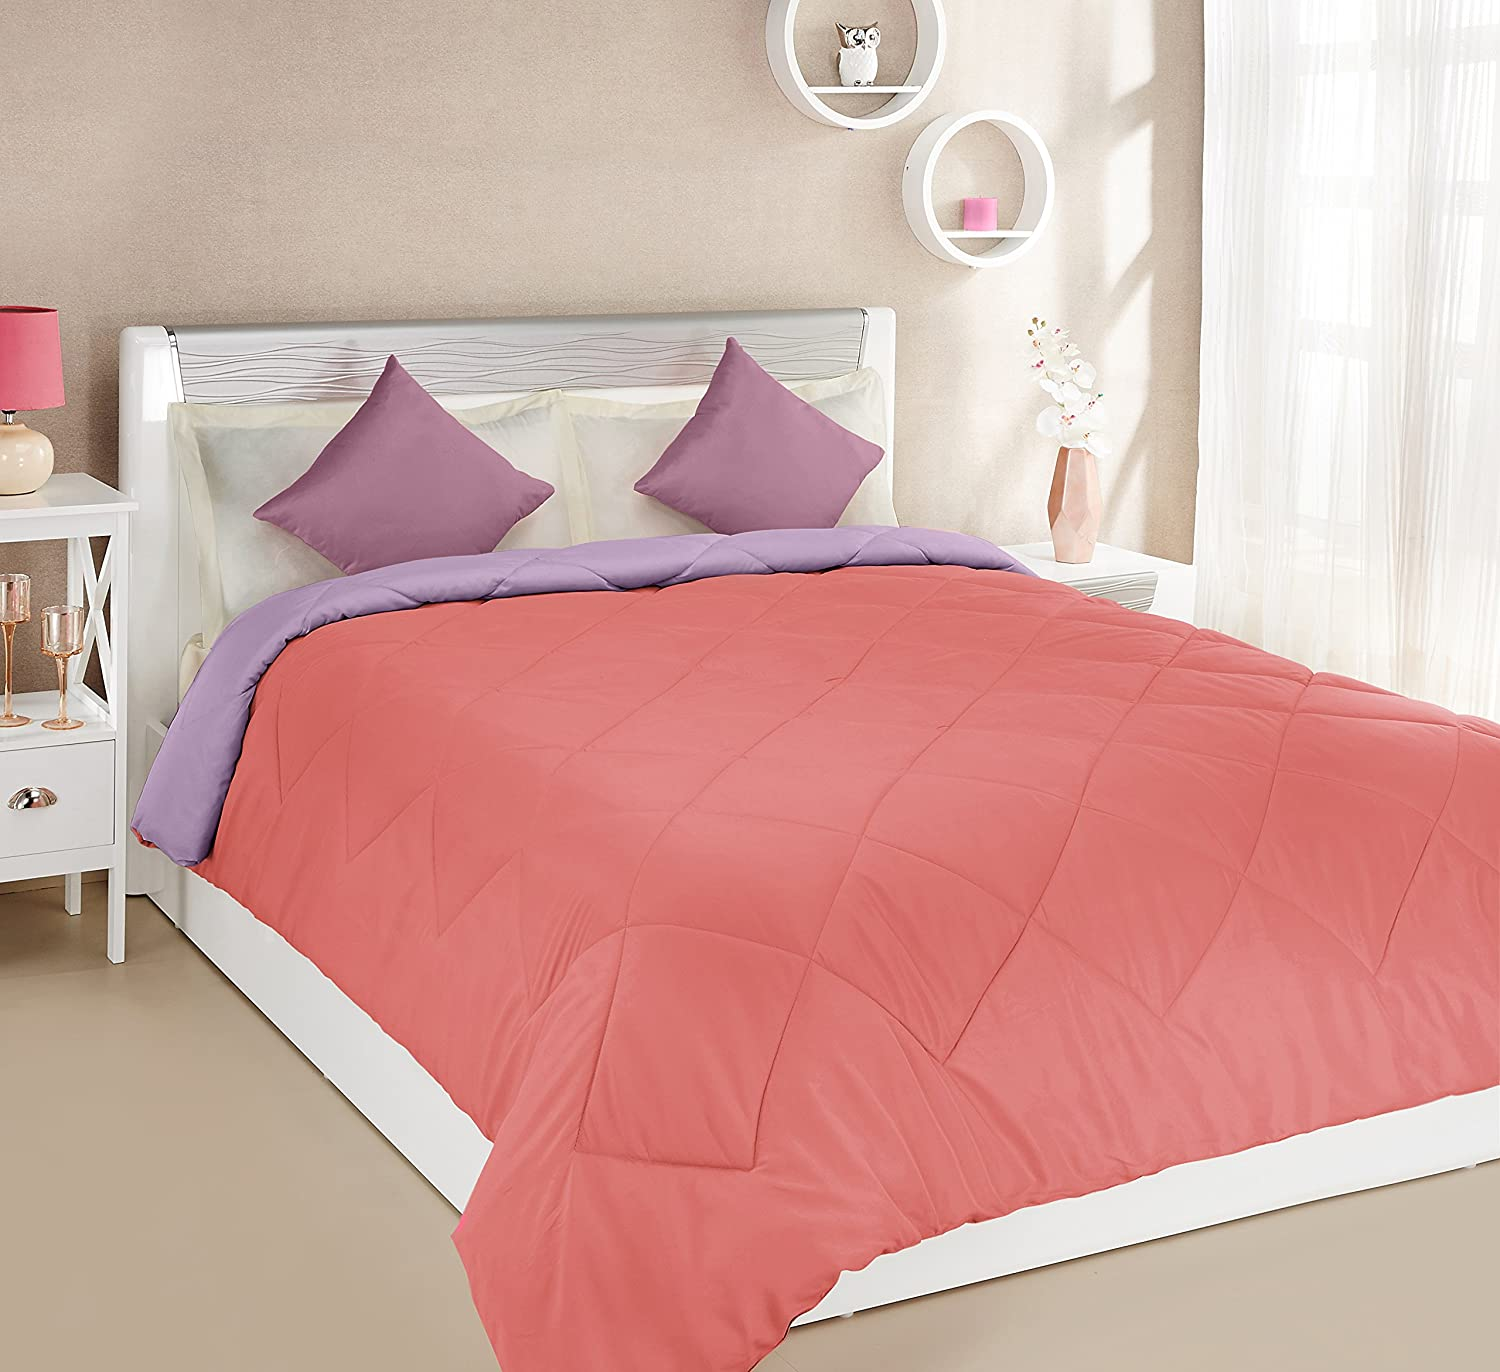 Solimo Microfibre Reversible Comforter, Double (Candy Pink and Bubble Gum Purple, 200 GSM)